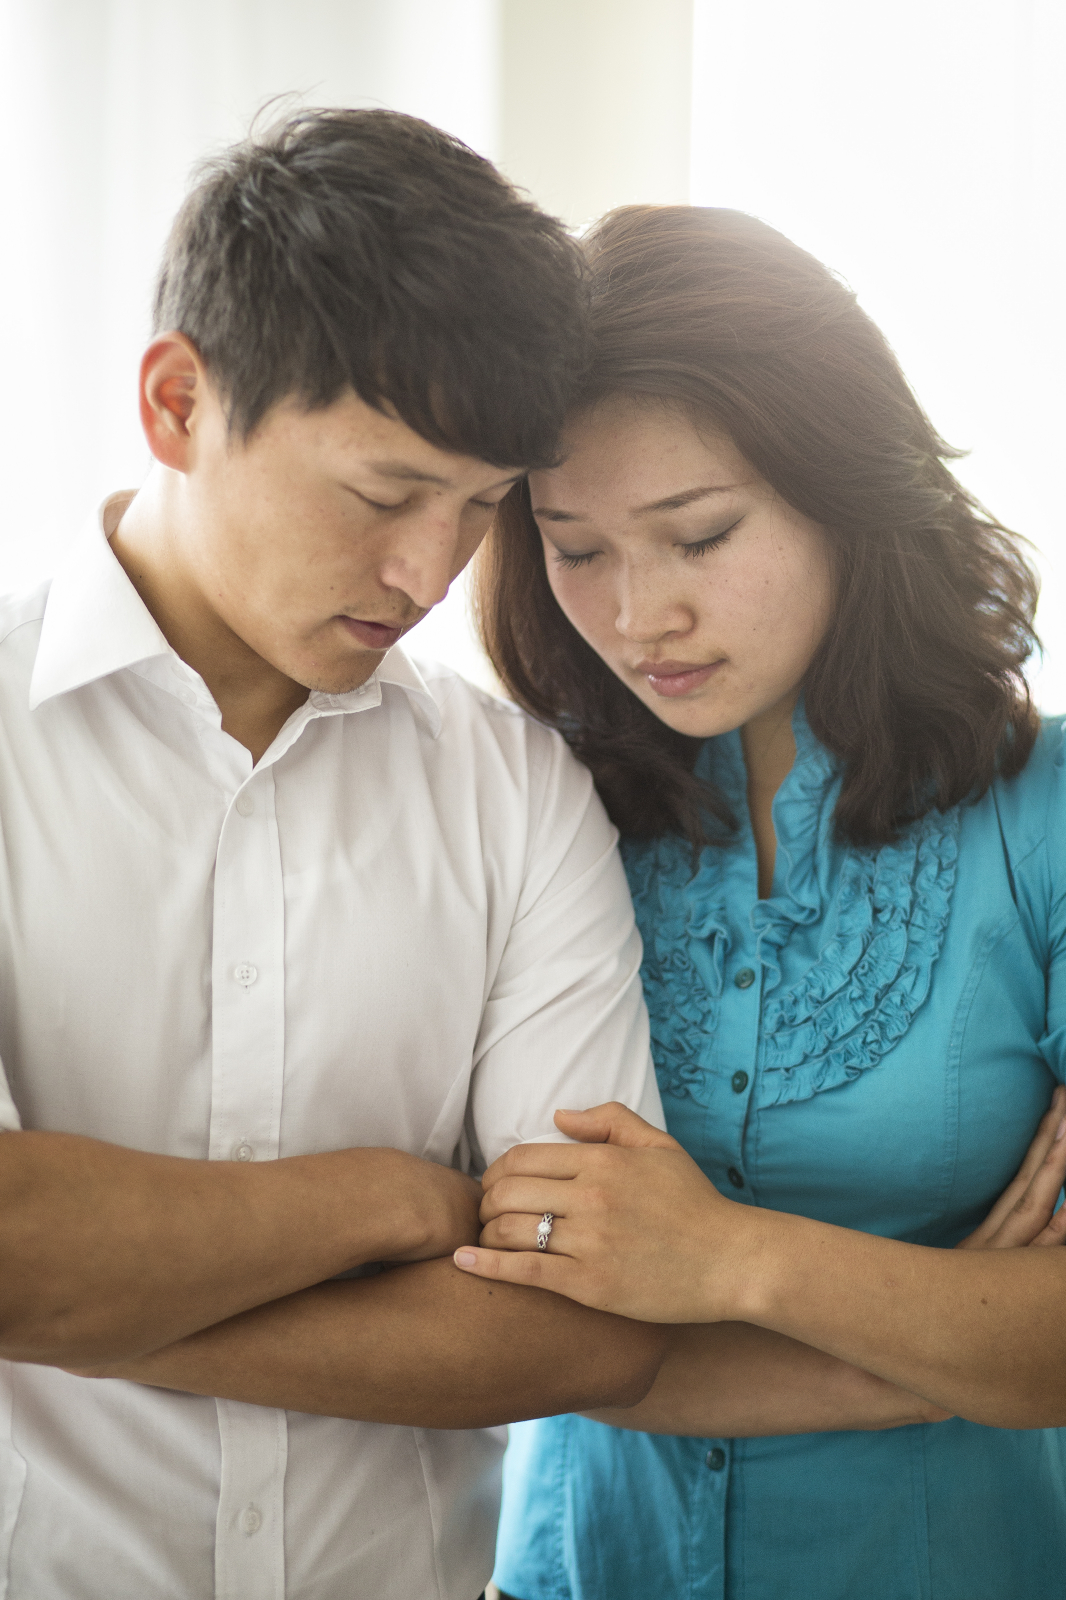 Daily prayers for dating couples — 9